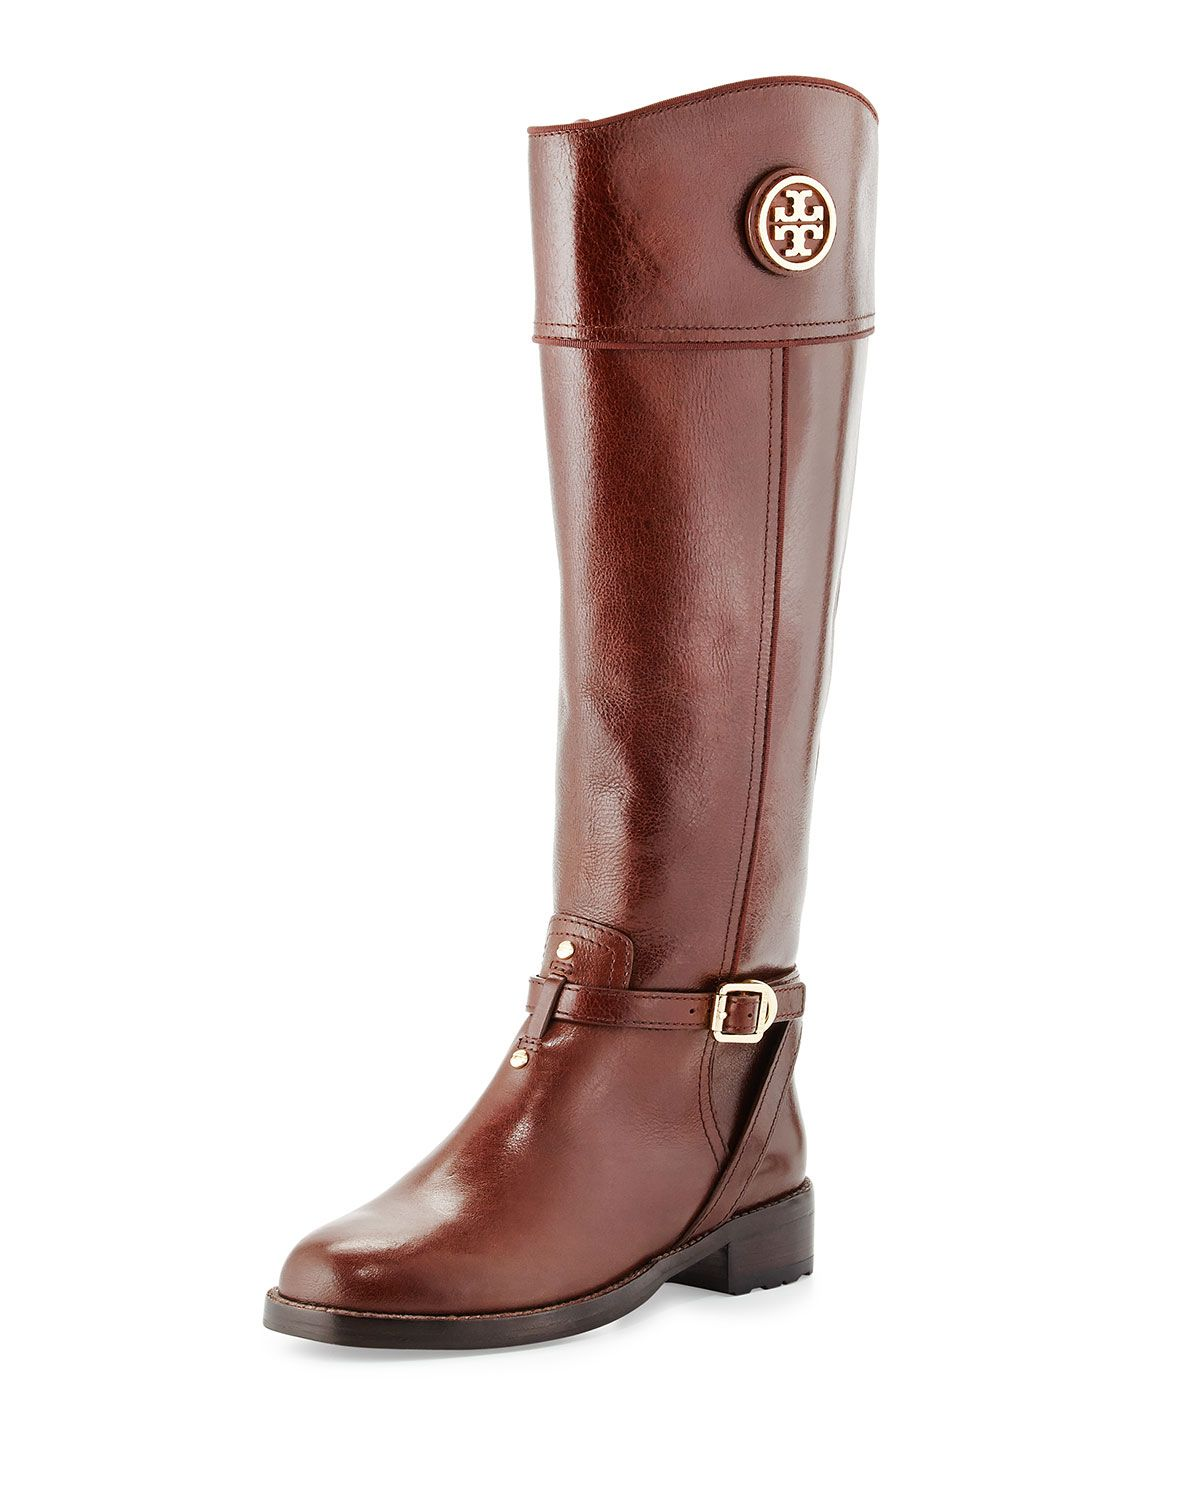 Tory Burch Boots   Will Work For Shoes   Pinterest   Boots, Shoes ... 0e9d76dbf8a0